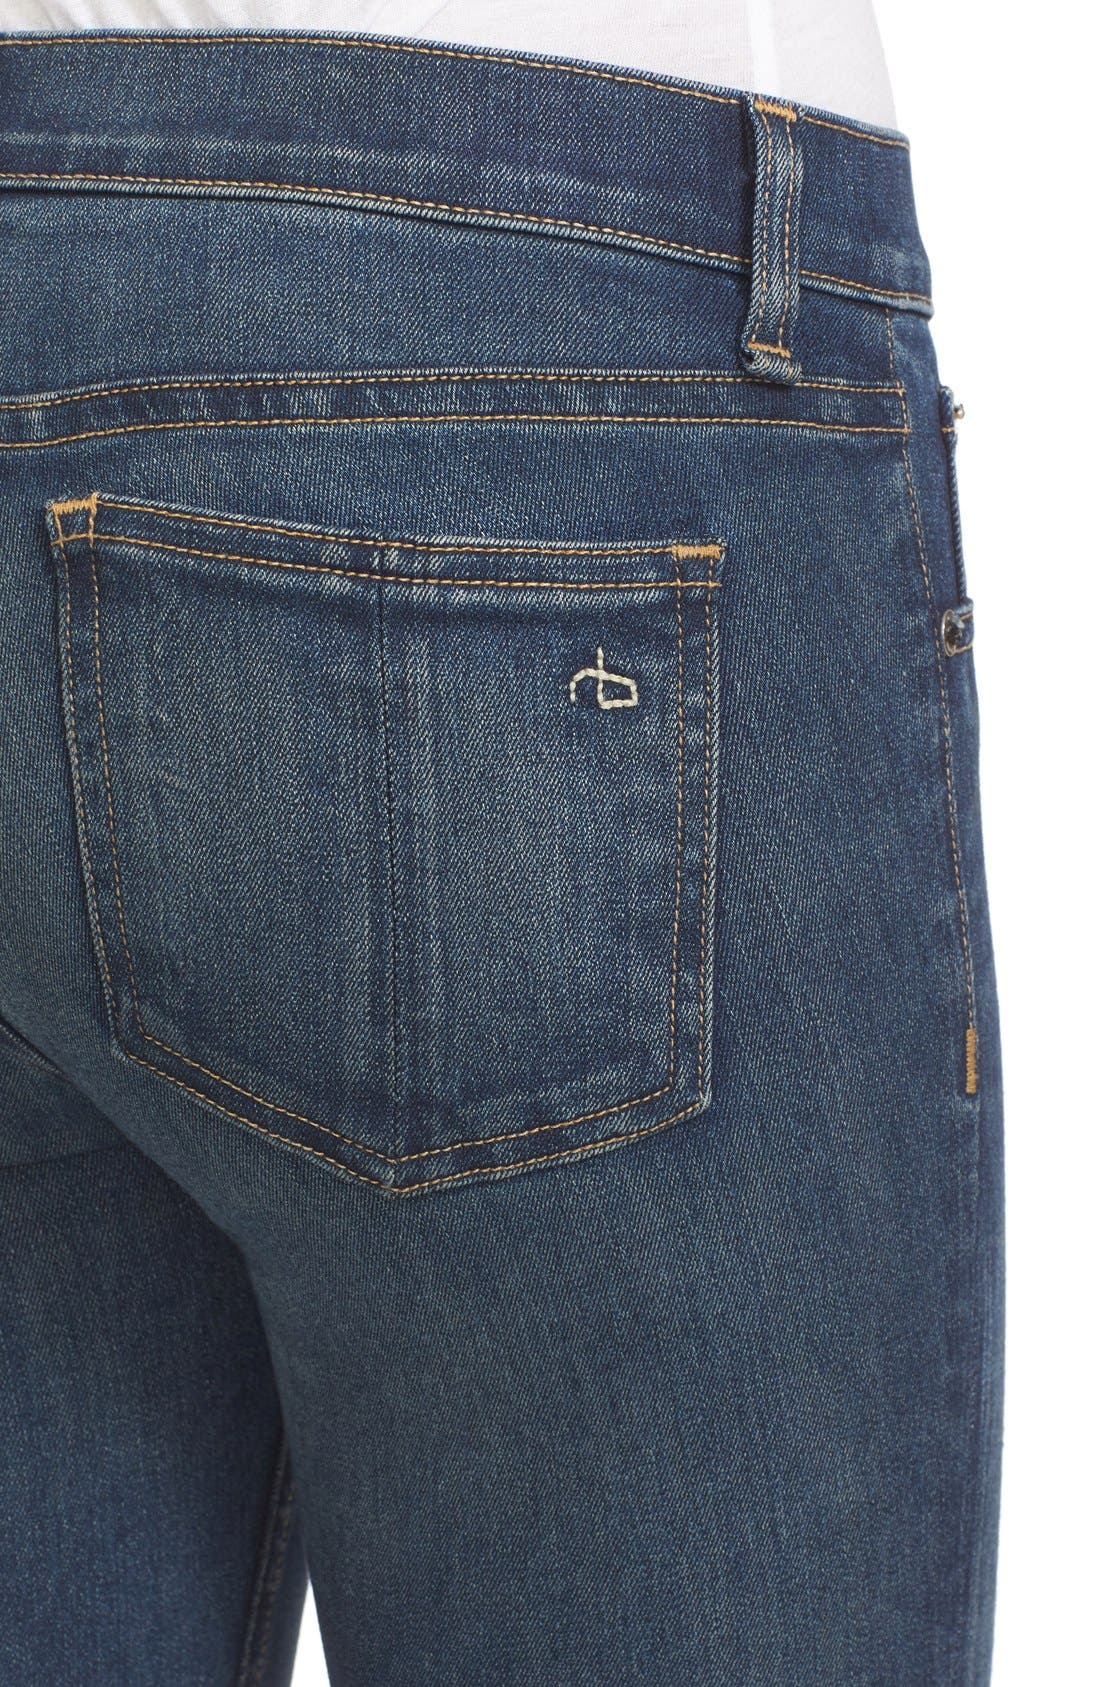 Skinny Jeans,                             Alternate thumbnail 5, color,                             401